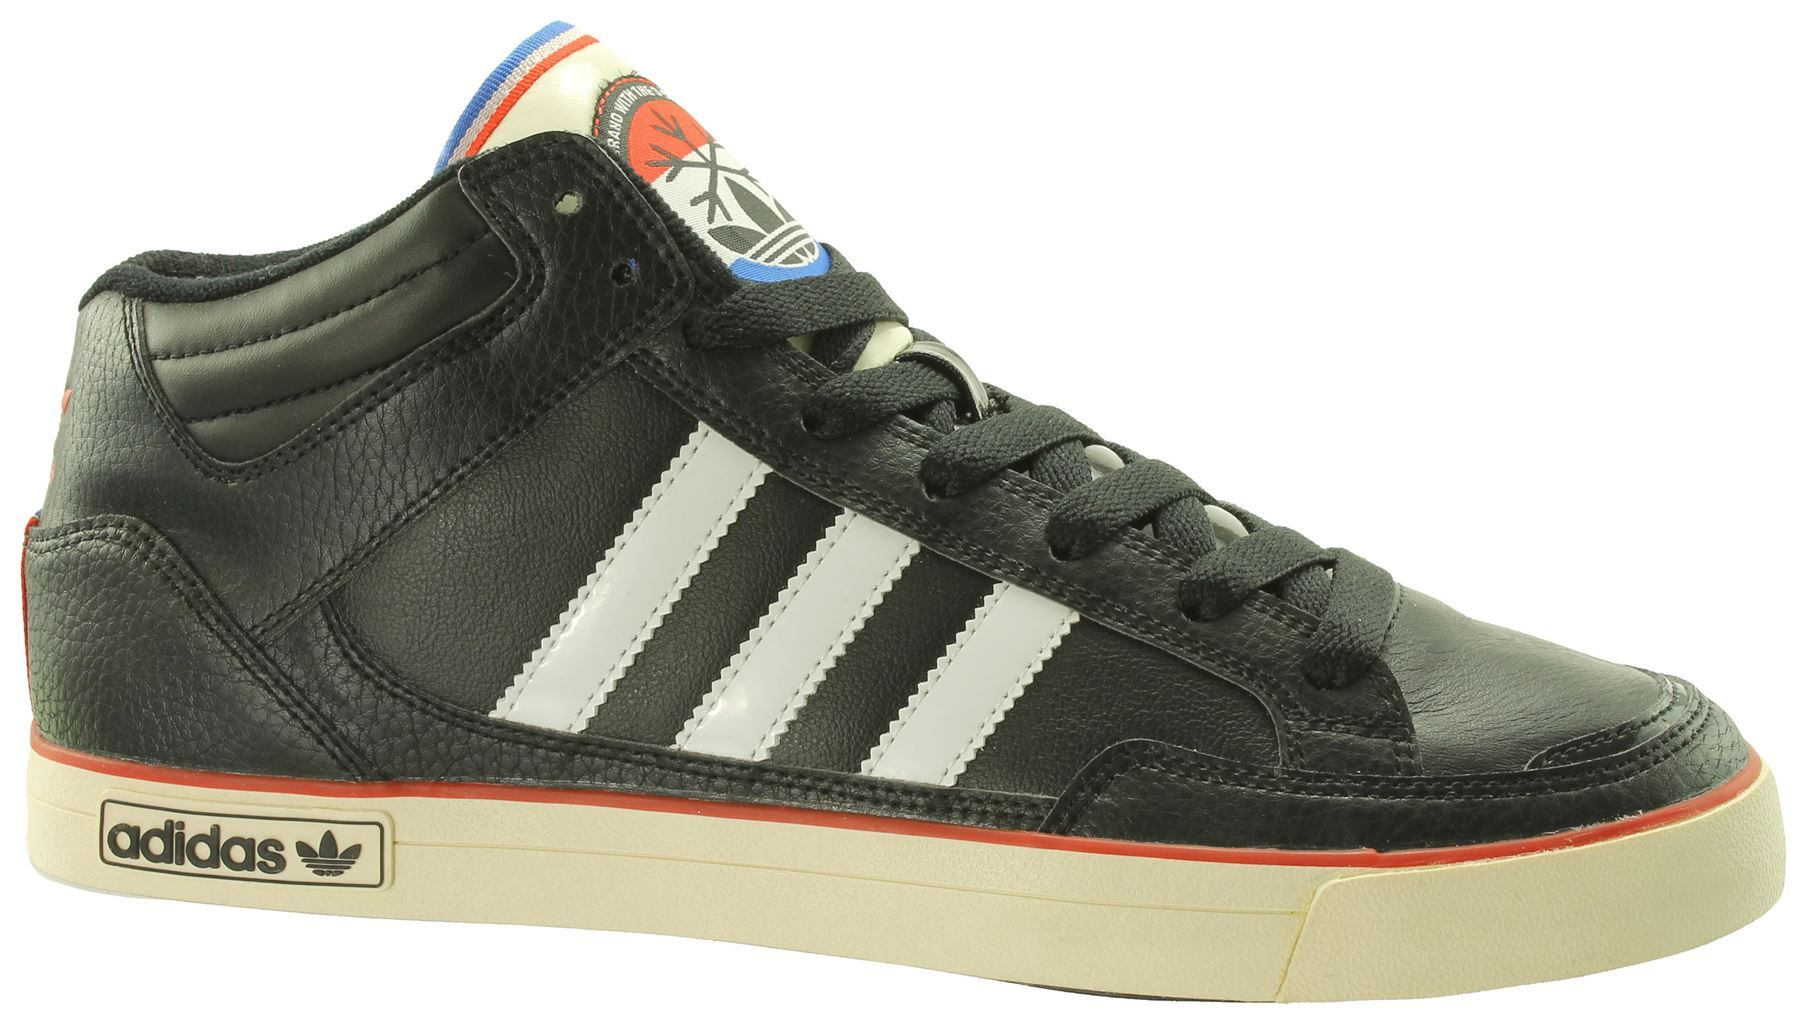 sports shoes 64982 510b3 Mens-adidas-Originals-and-Neo-Label-Boots-Trainers-VC-1000-Vespa -LX-Tennis-Court